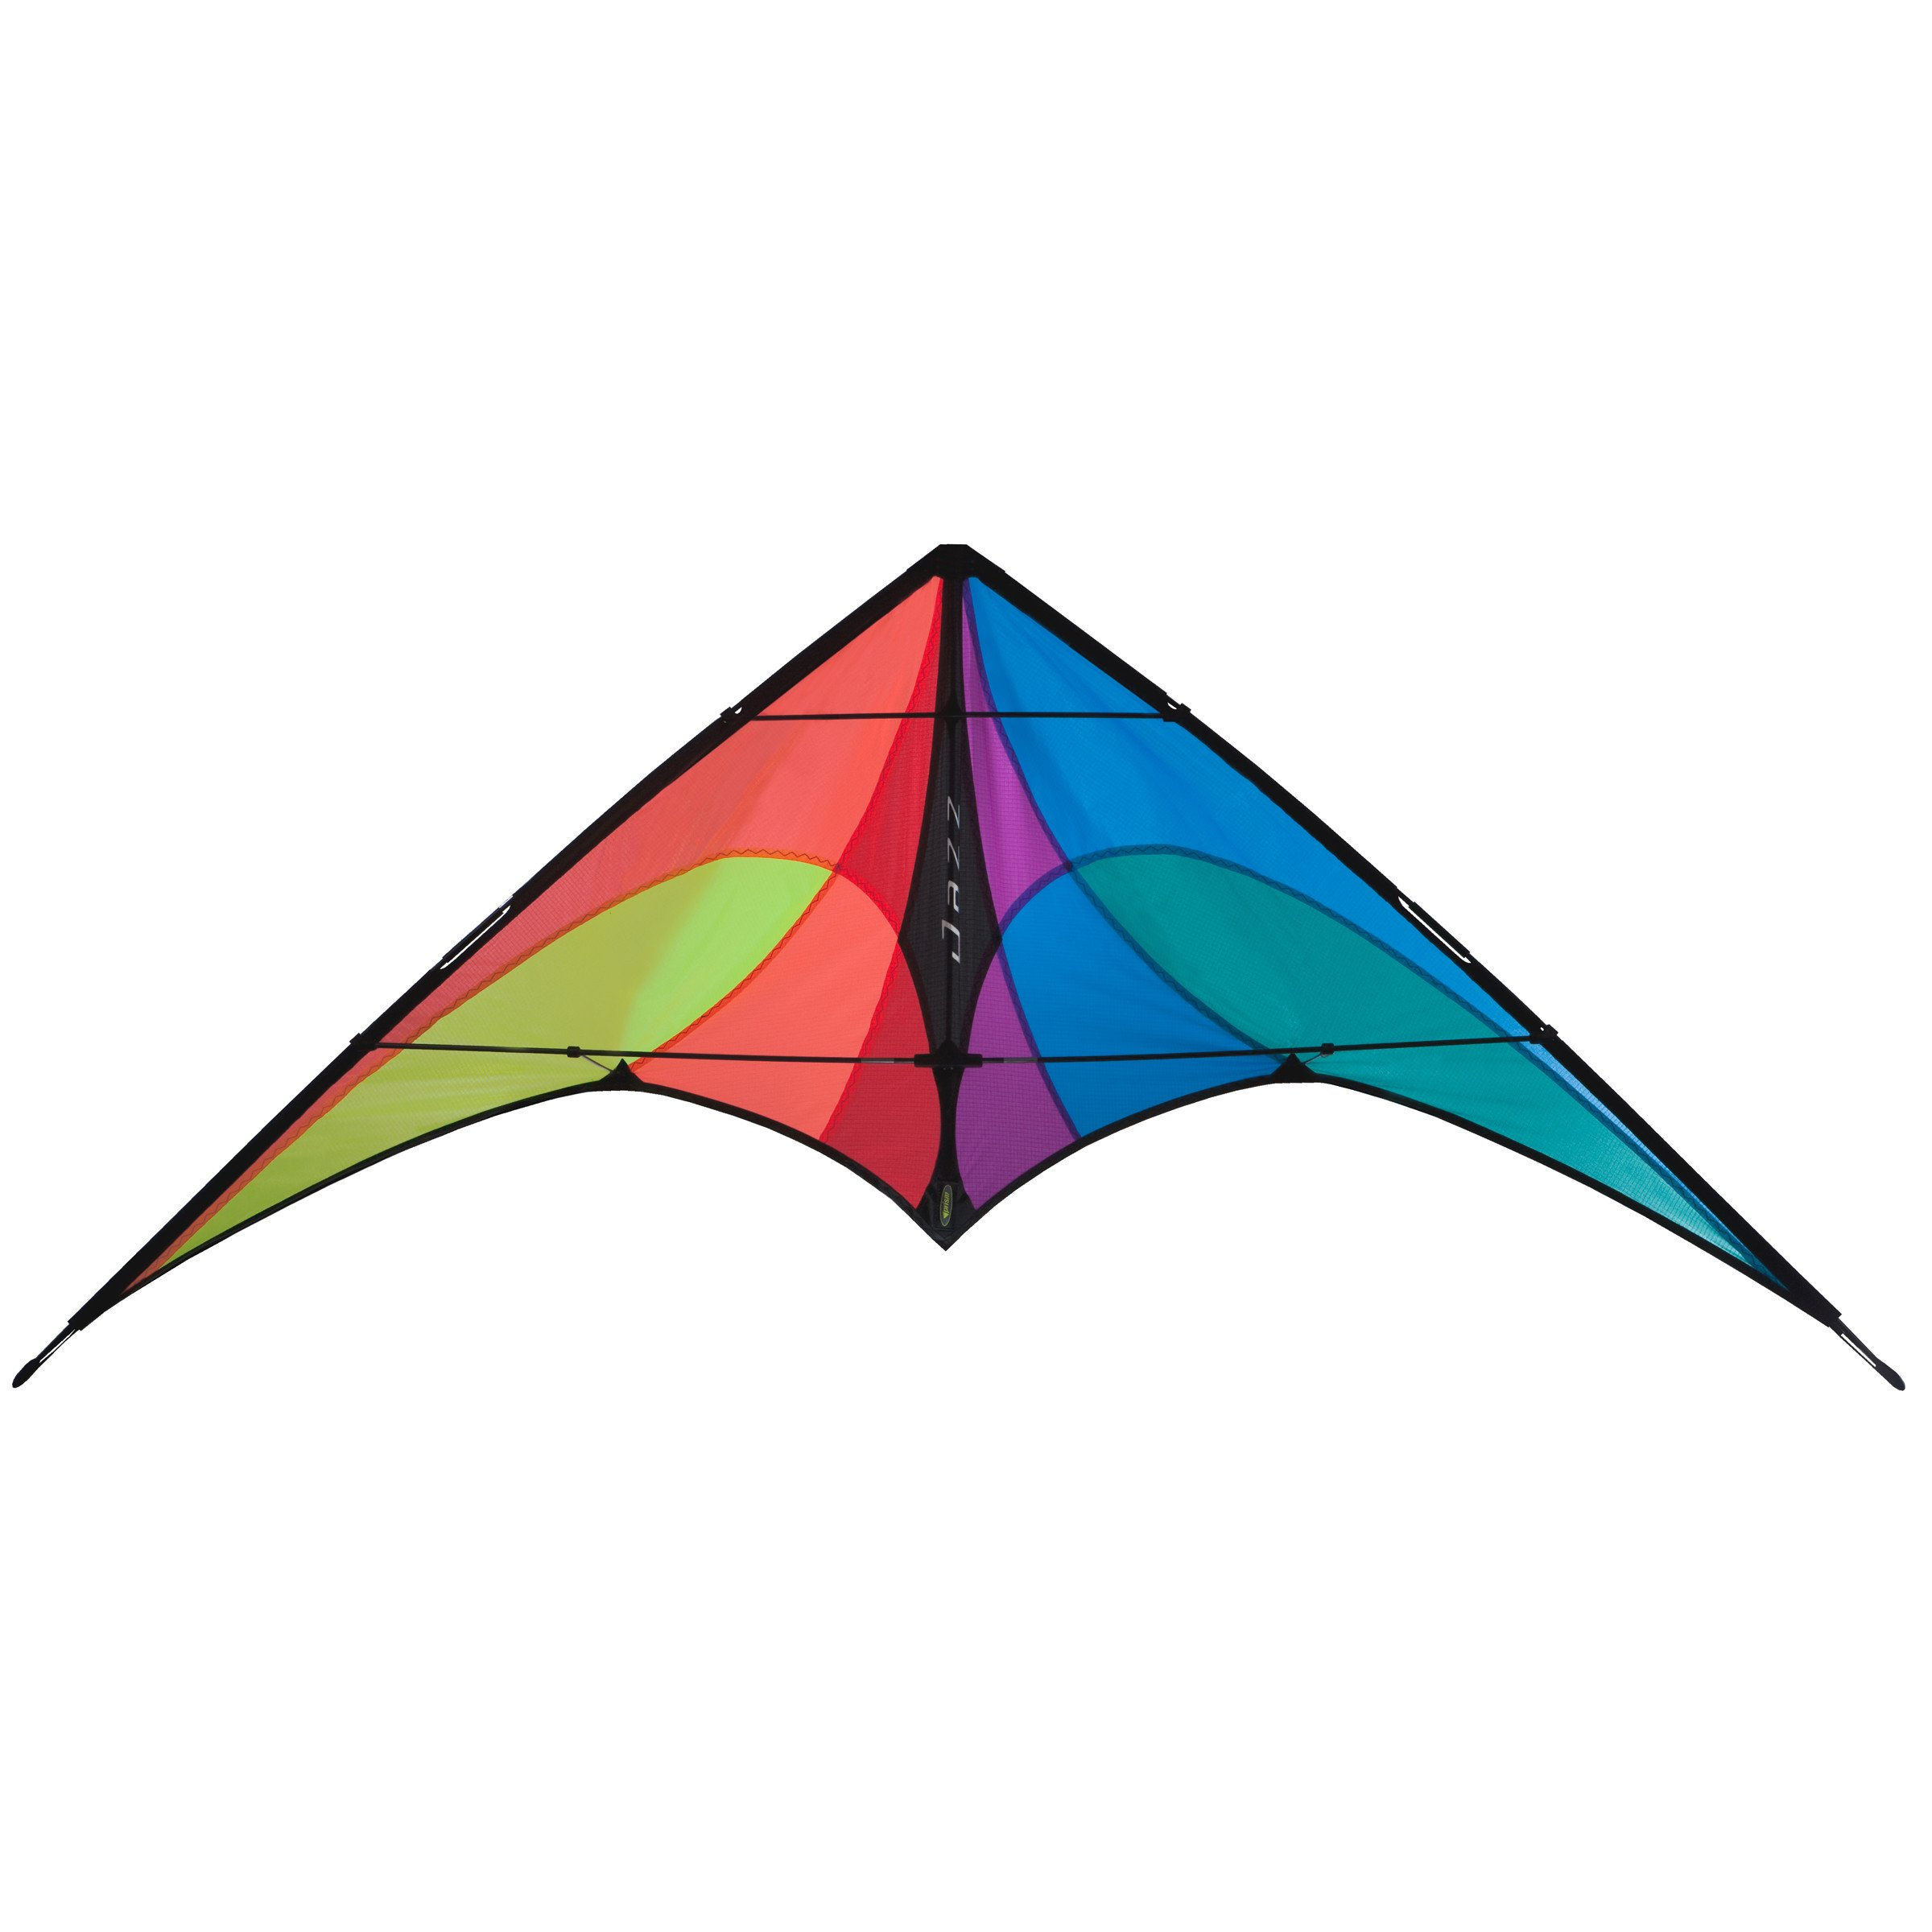 Prism Jazz Dual-line Stunt Kite, Spectrum by Prism Kite Technology